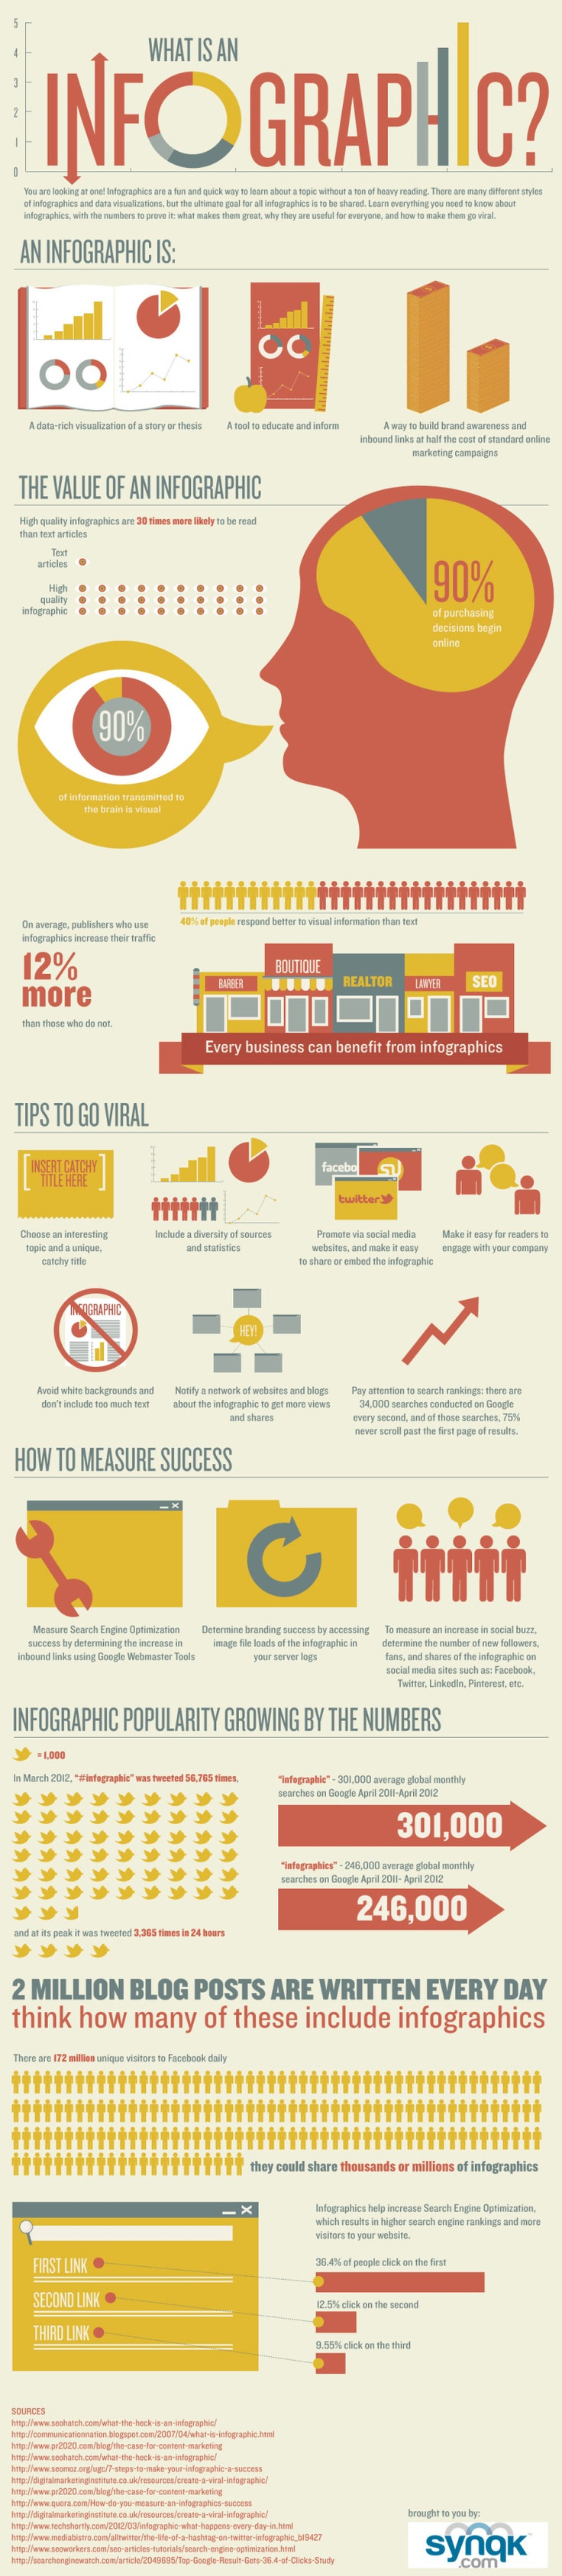 25+ best ideas about What is an infographic on Pinterest | What is ...